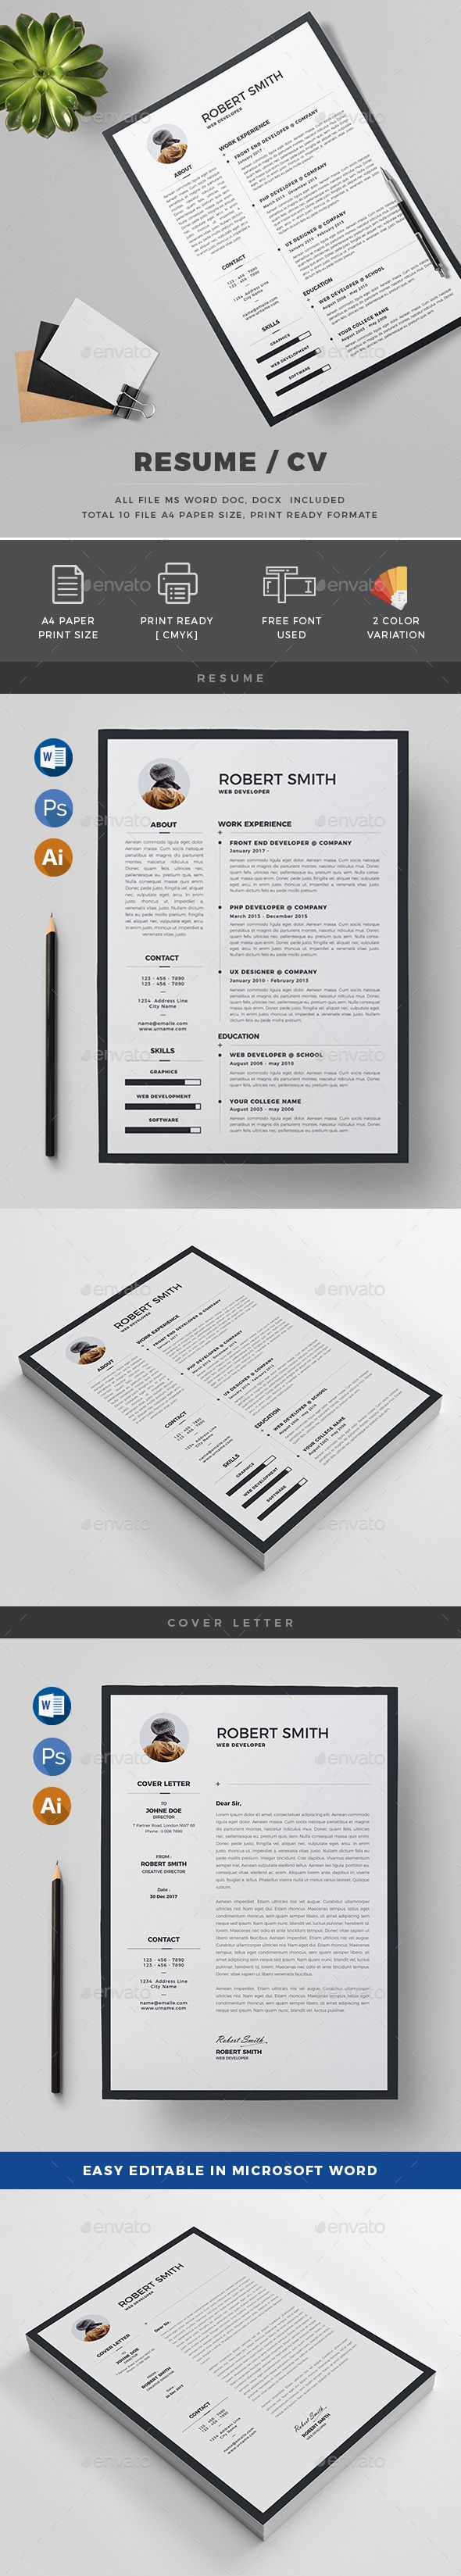 59 Best Cv Images On Pinterest Resume Cv Cv Design And Resume